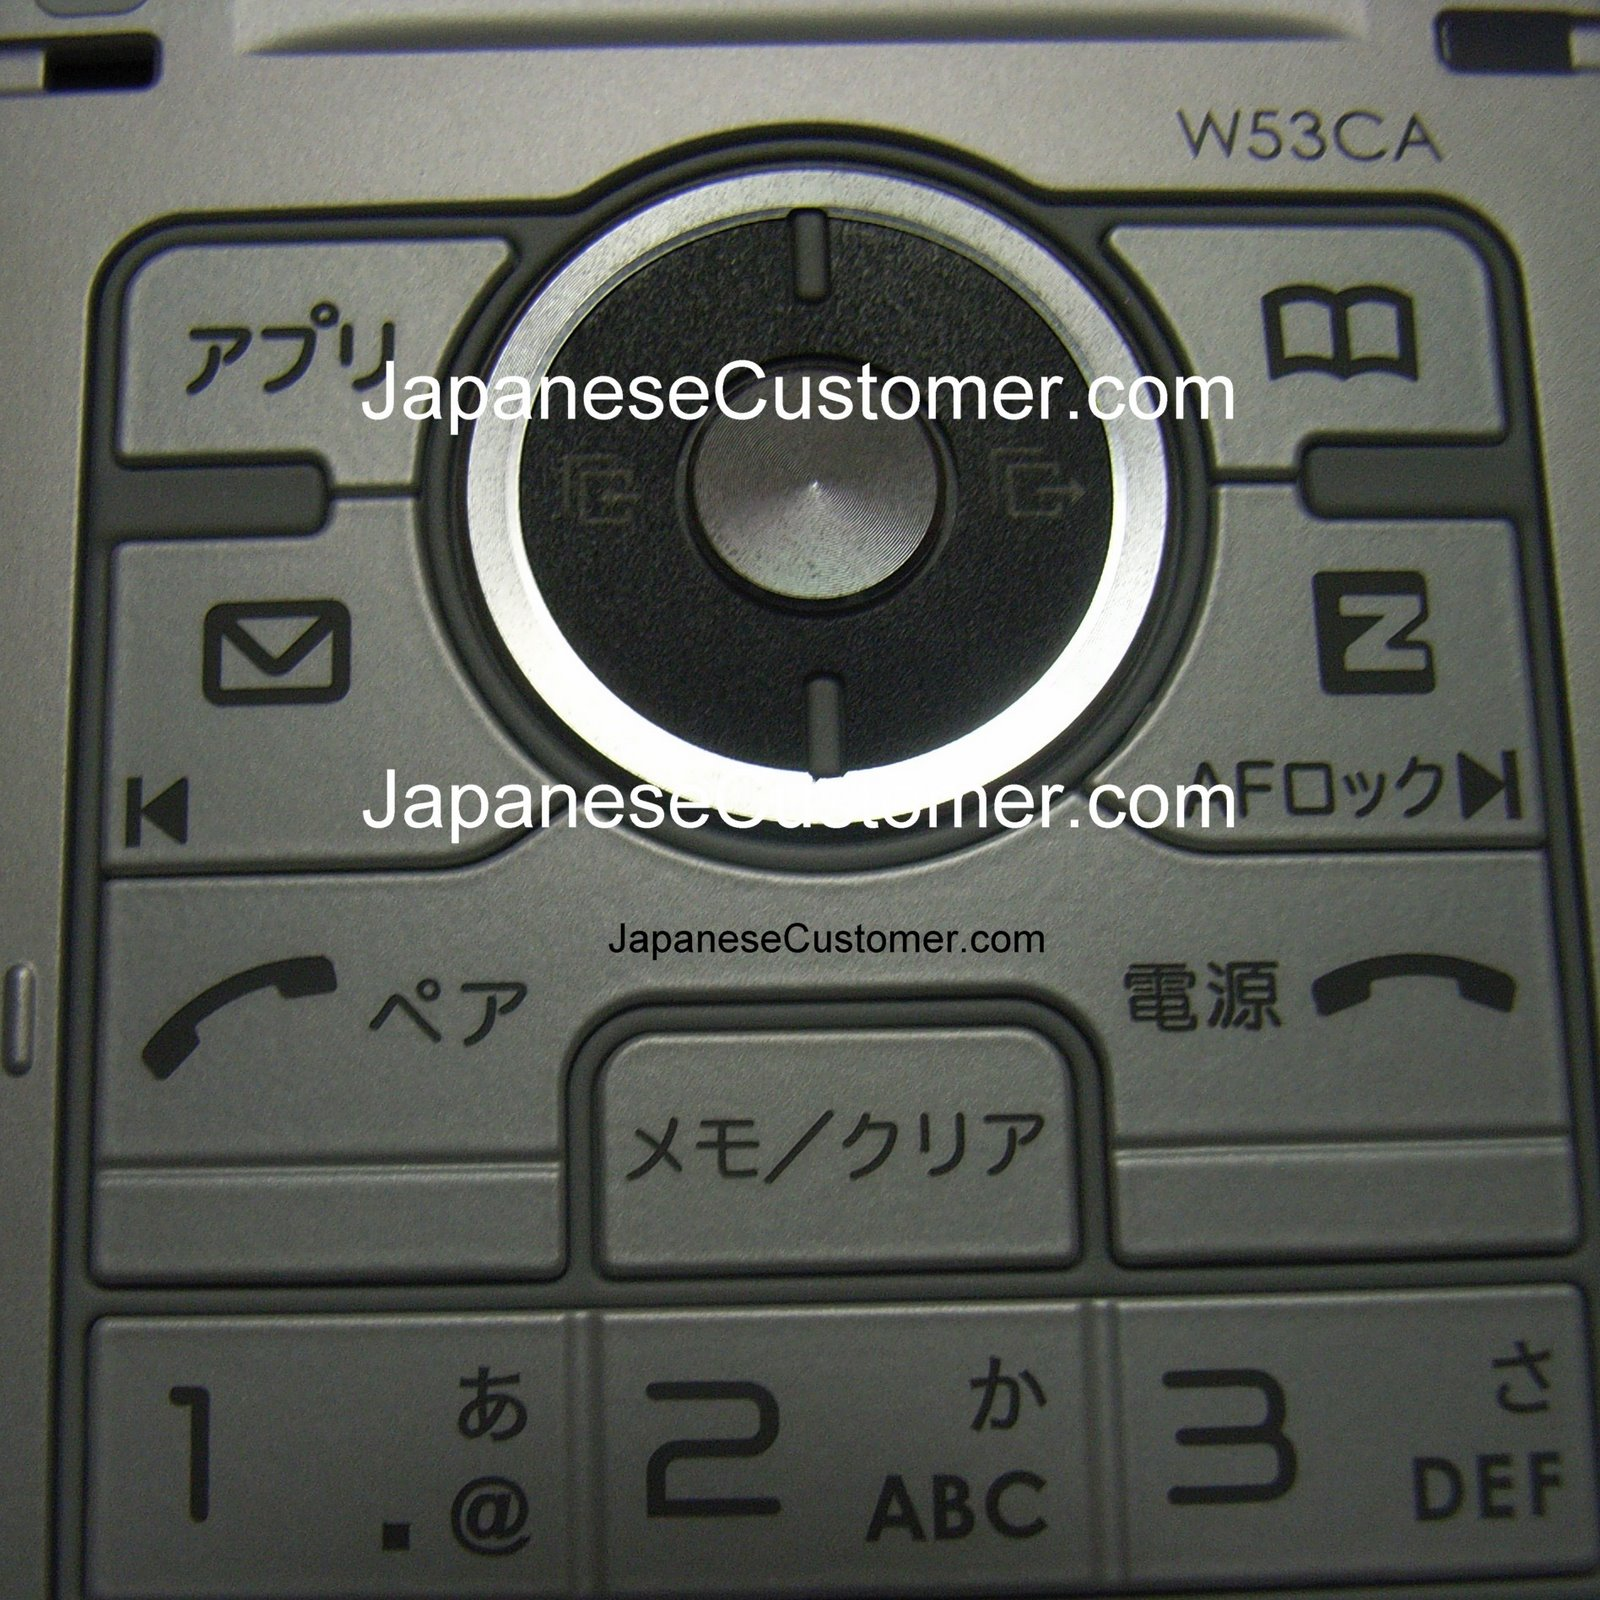 Japanese mobile phone copyright peter hanami 2005